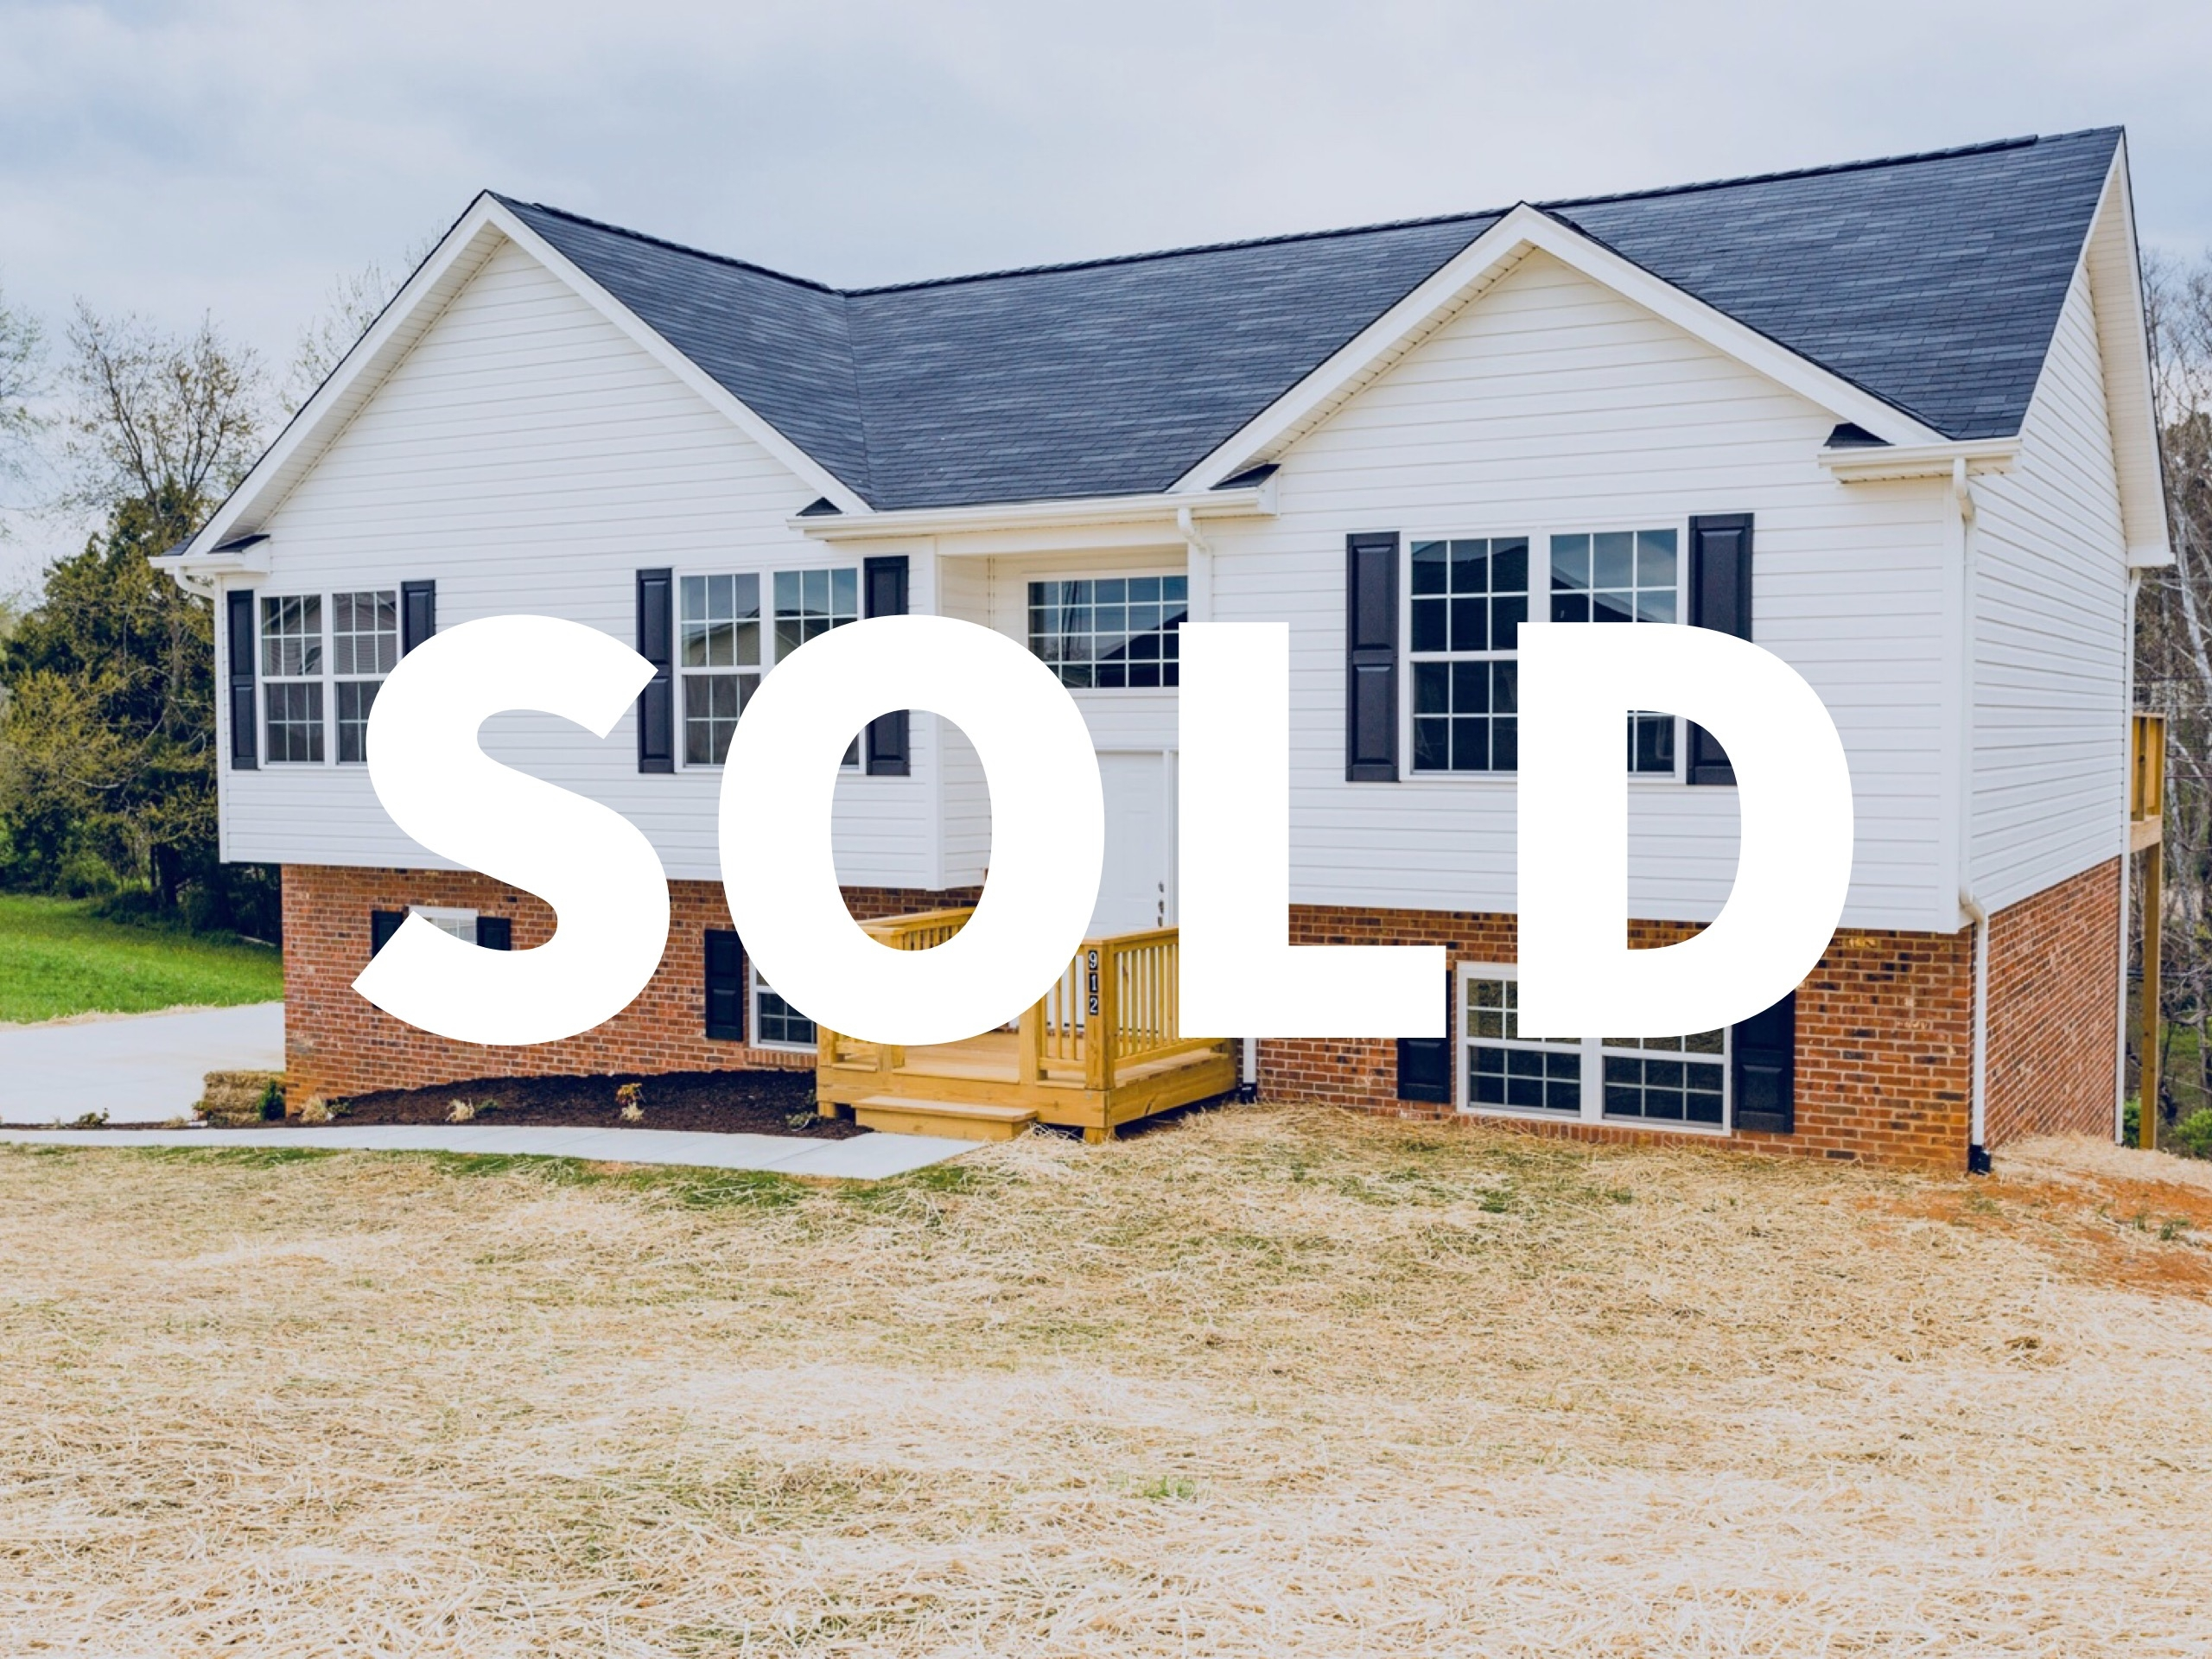 Home Sold River Bluff Landing C - daveandmia | ello